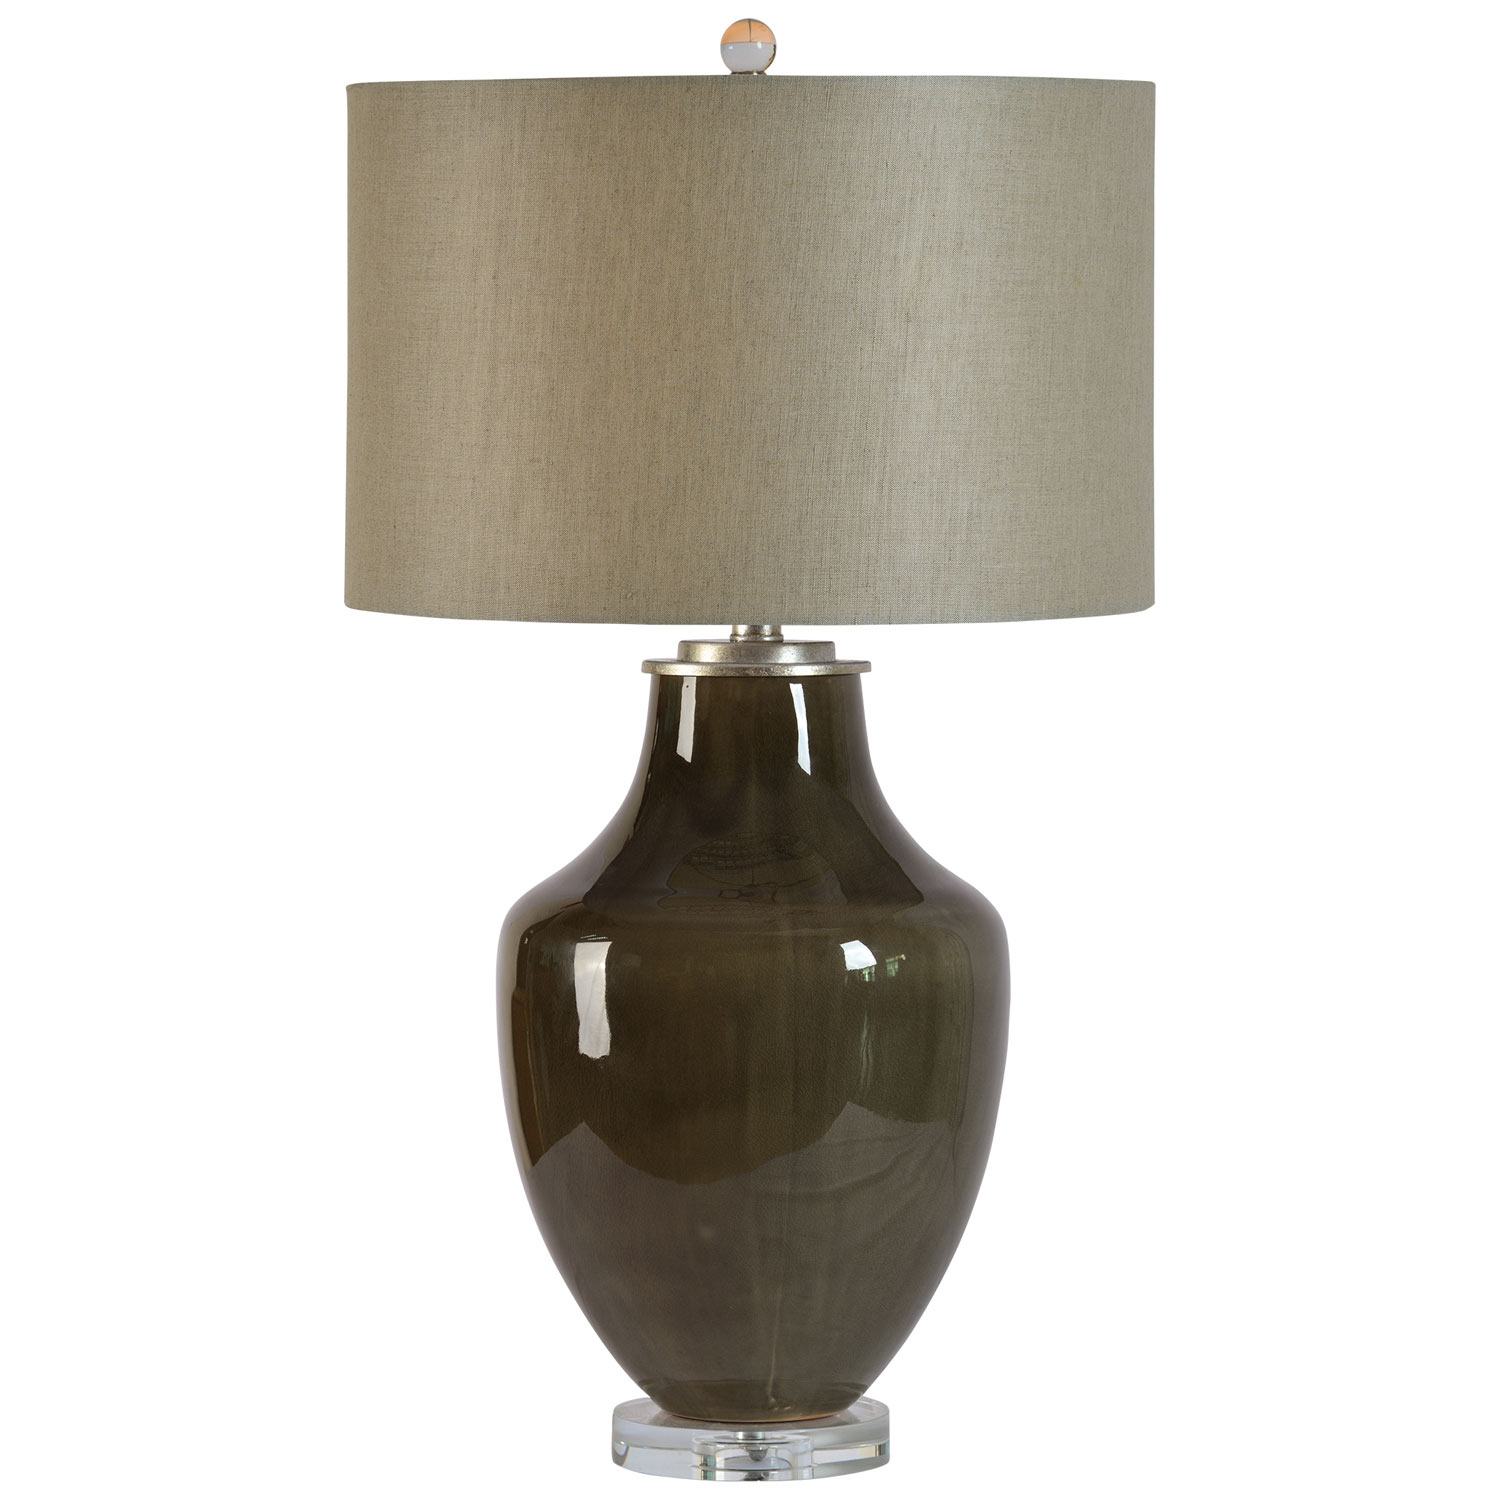 Ren-Wil Camelot Table Lamp - Grey Glossy/Clear